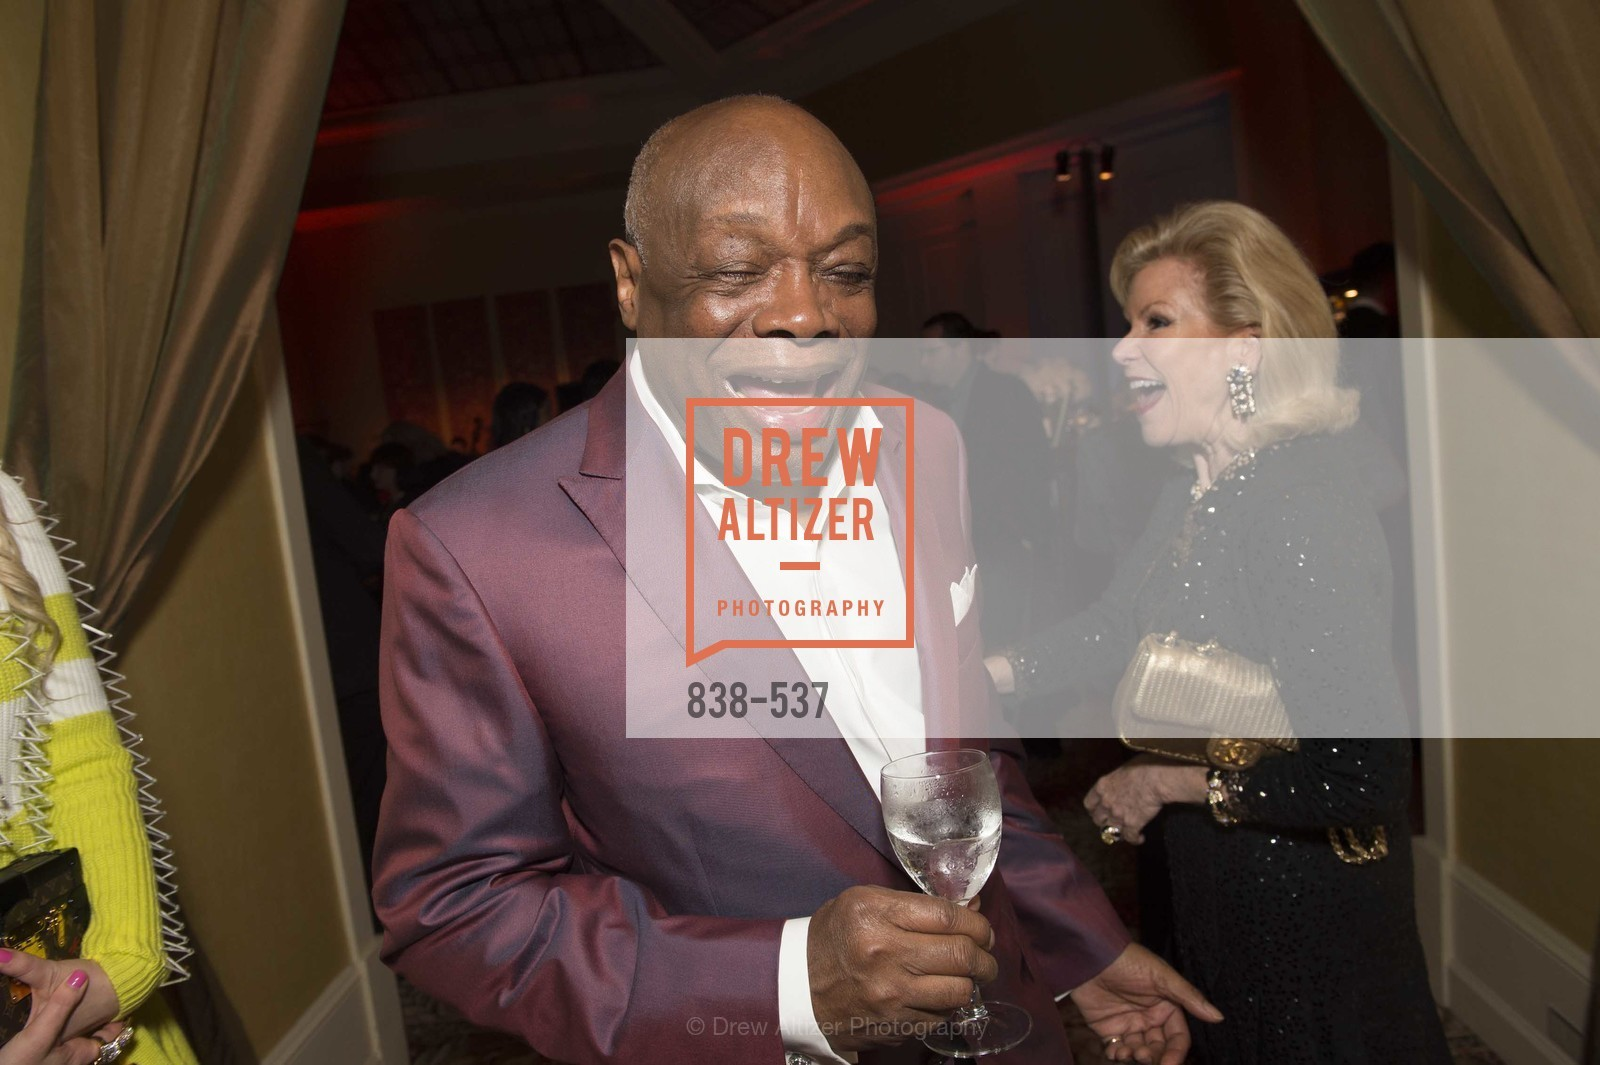 Willie Brown, TOP OF THE MARK'S 75TH Anniversary Party, US, November 7th, 2014,Drew Altizer, Drew Altizer Photography, full-service agency, private events, San Francisco photographer, photographer california